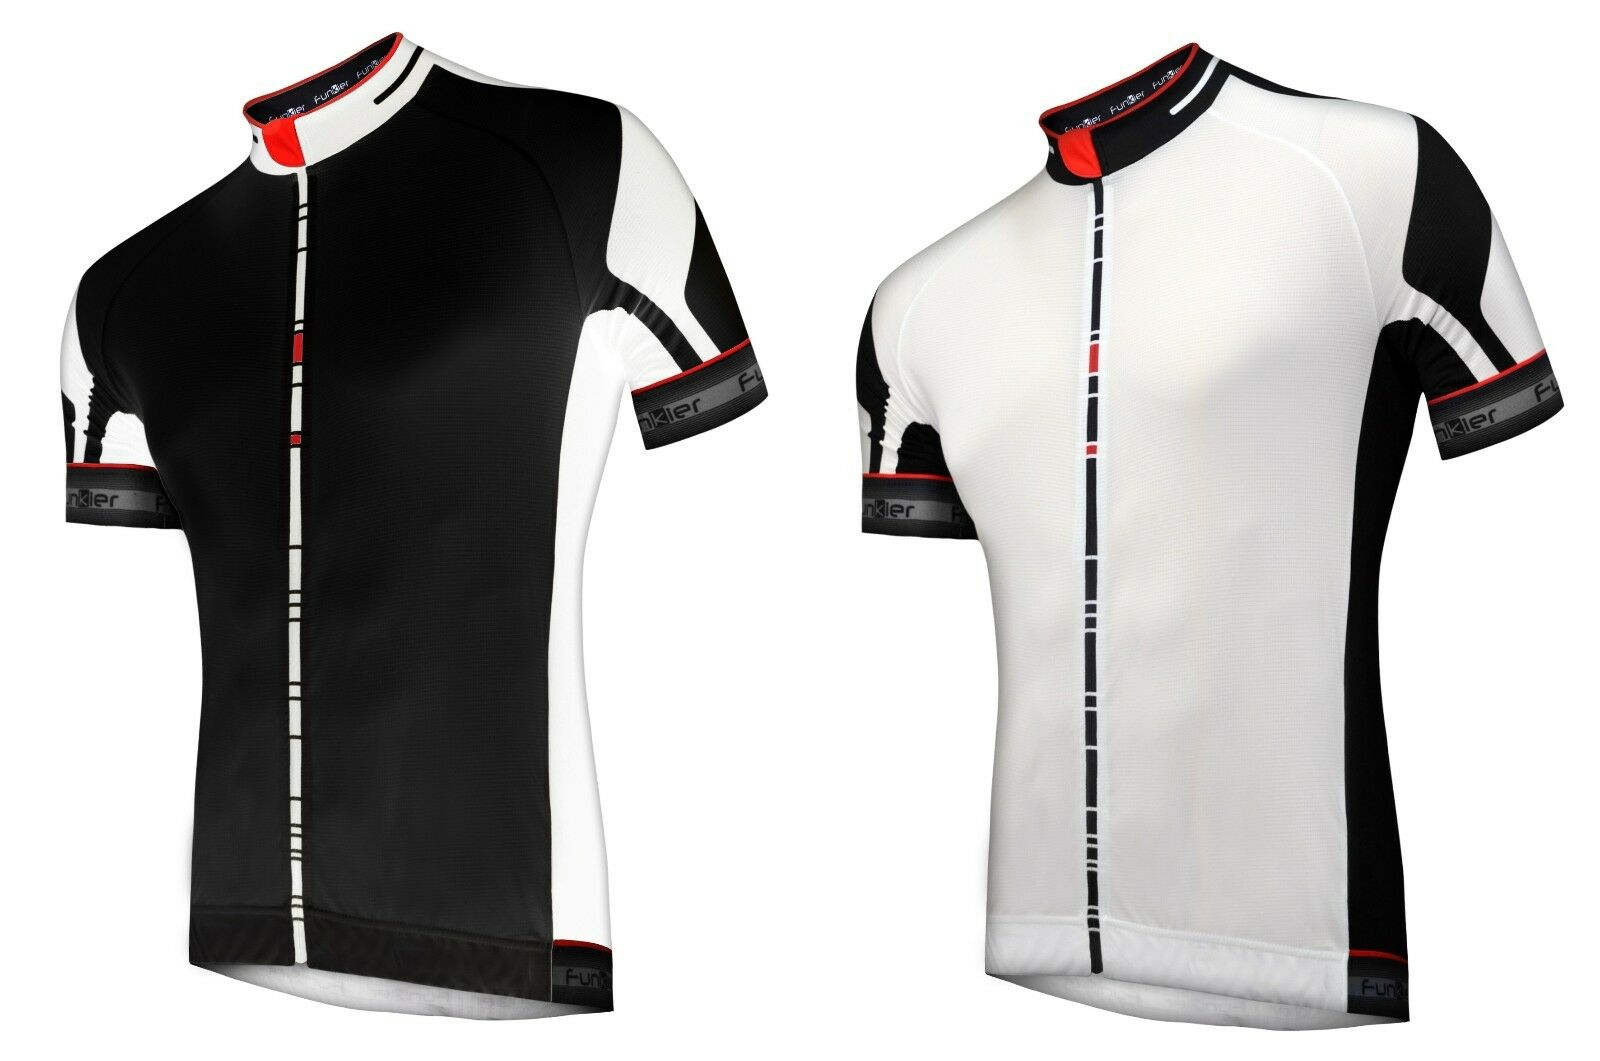 Funkier Men's Cycling MTB J-771 Short Sleeve Jersey Waterproof   save up to 50%